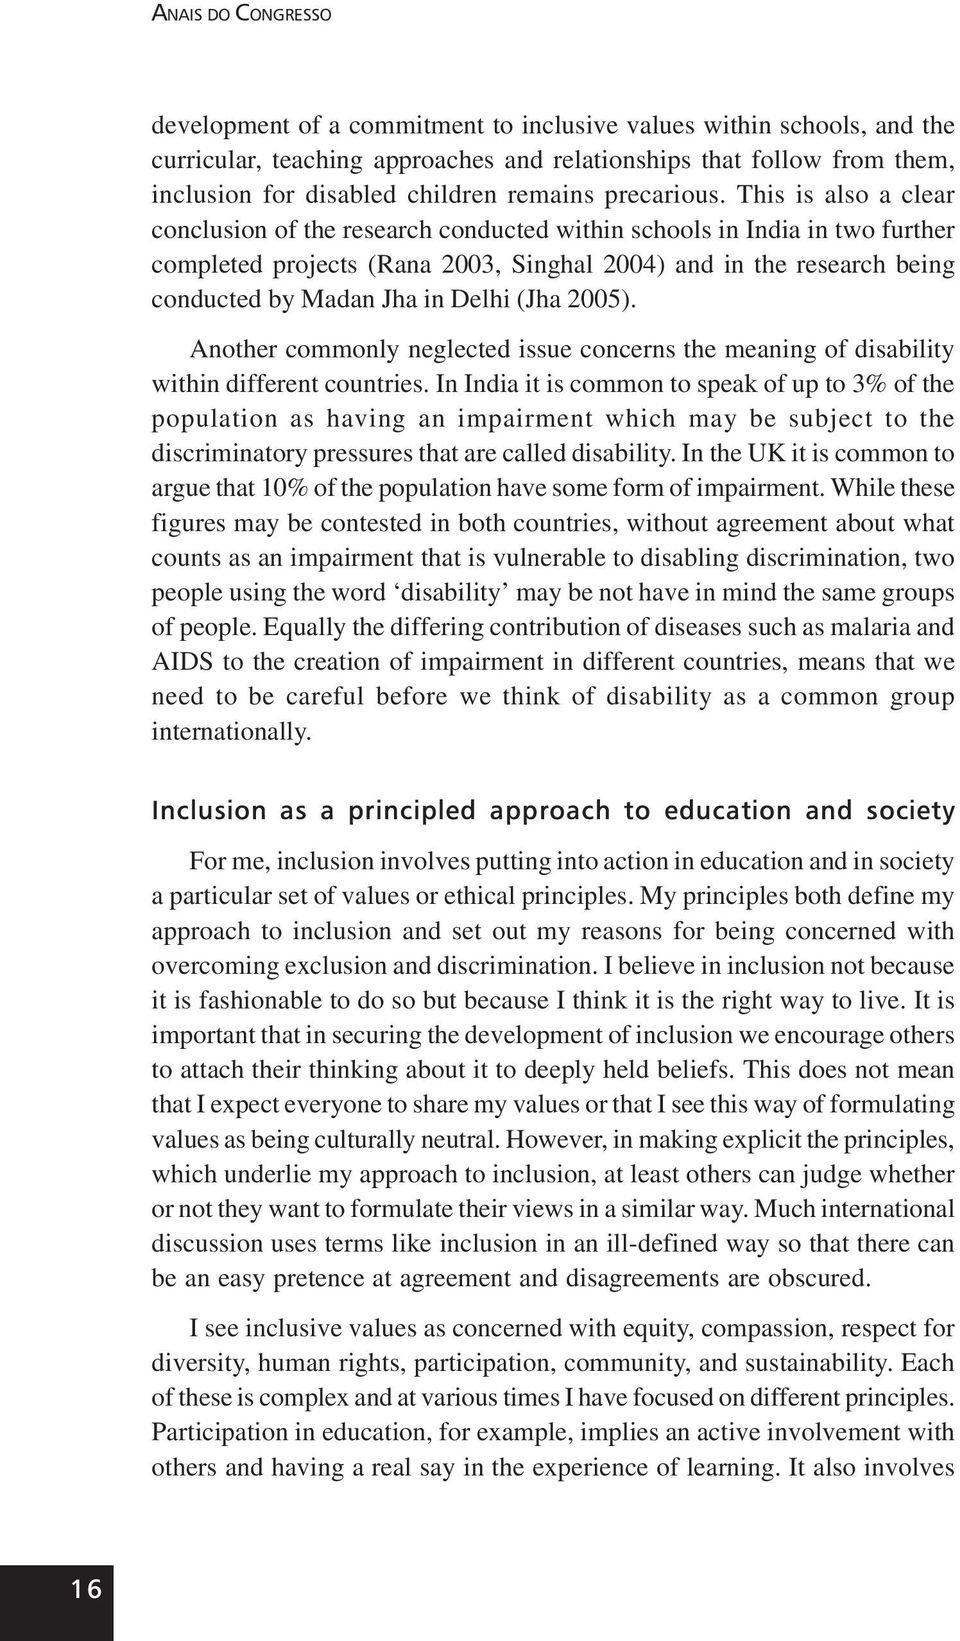 This is also a clear conclusion of the research conducted within schools in India in two further completed projects (Rana 2003, Singhal 2004) and in the research being conducted by Madan Jha in Delhi